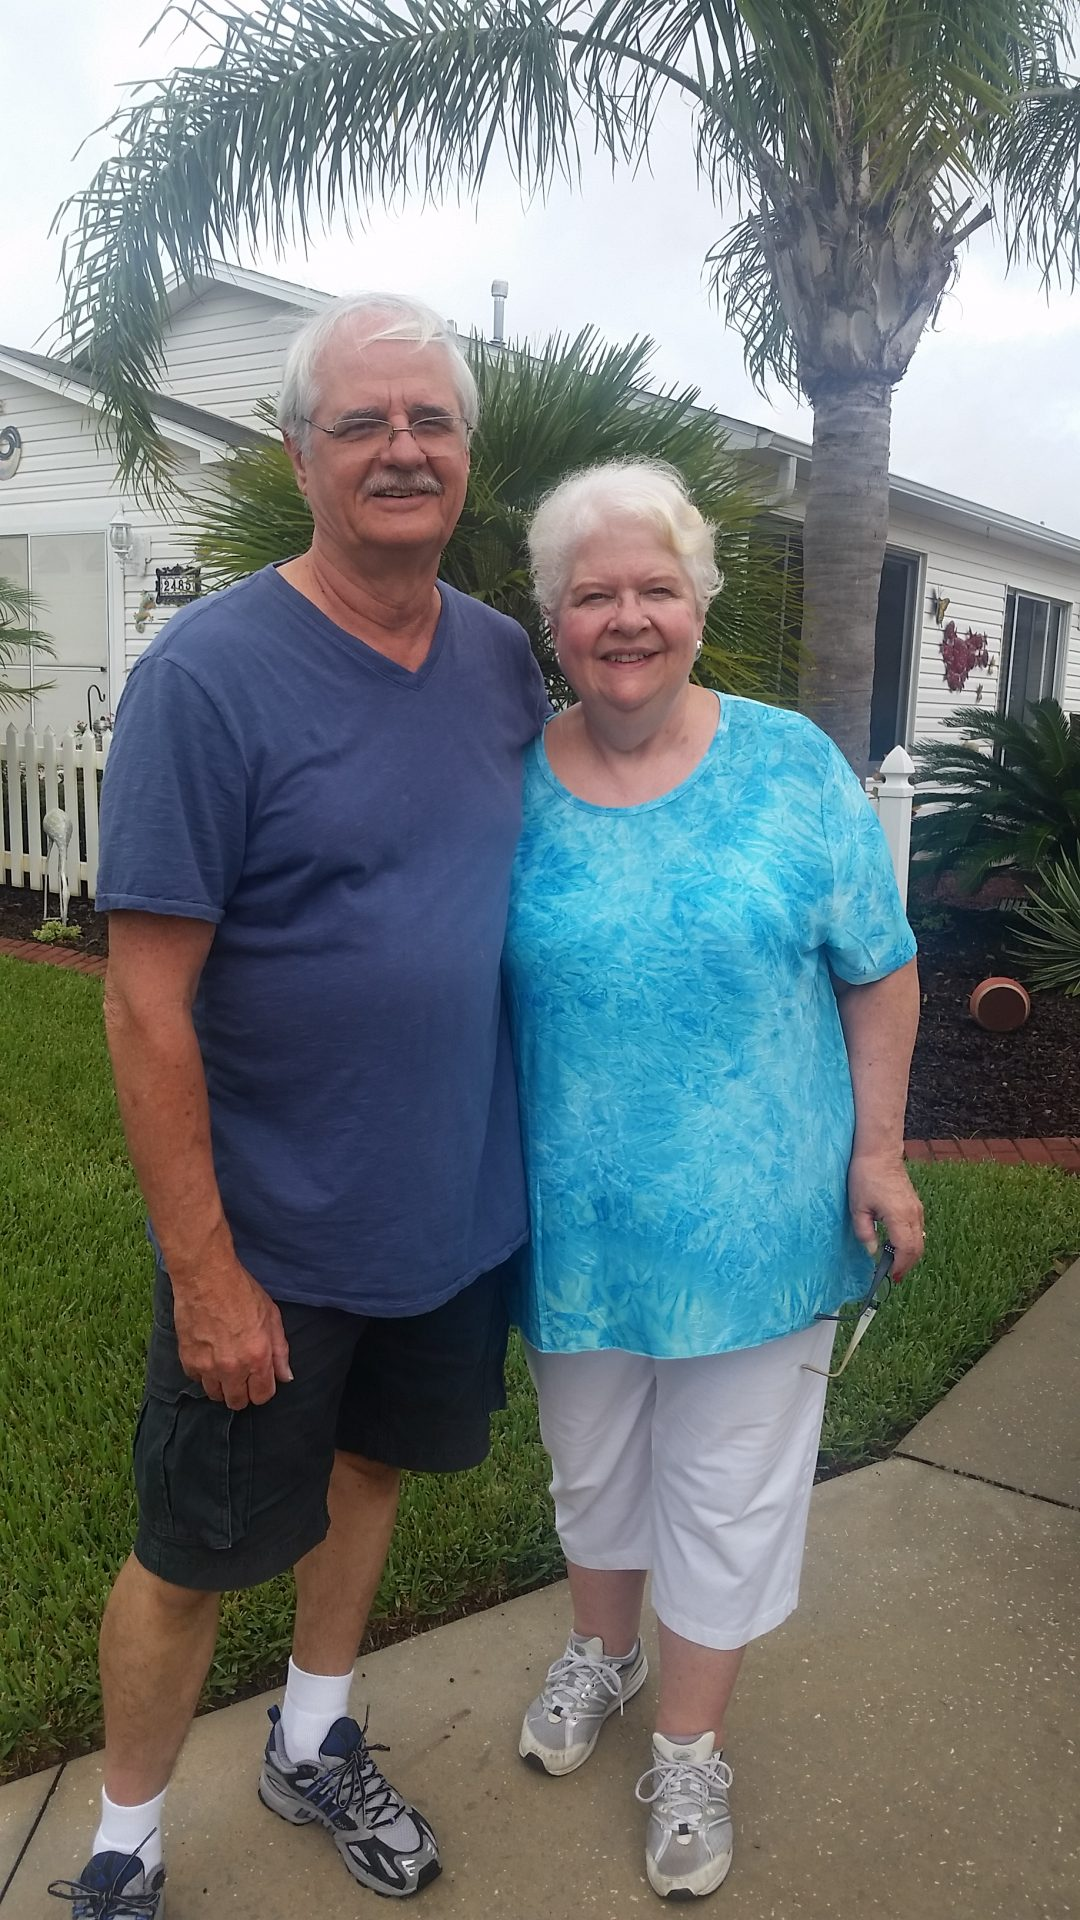 This photo was taken in August 7, 2017 during one of Sal & Peg's exploratory visits to The Villages, Florida.  Linda & George are already Village residents.